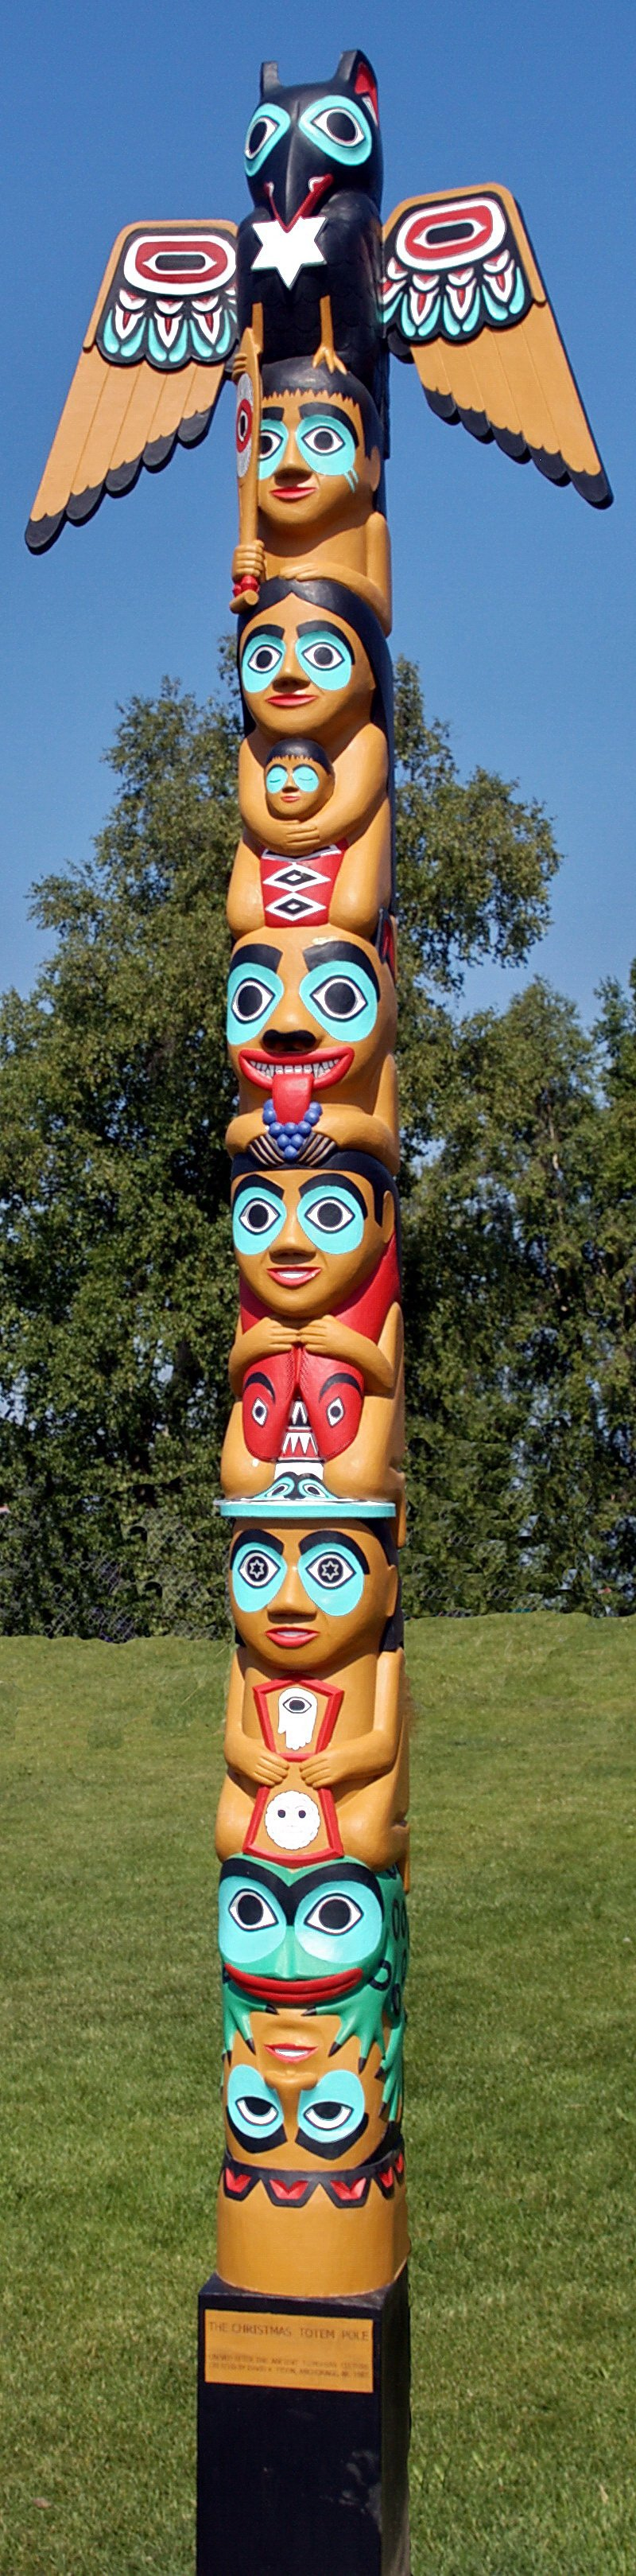 totem poles Totem poles made in ketchikan alaska totem poles are hand carved locally in ketchikan, alaska using yellow cedar grown deep in the rain forests of southeast alaska.